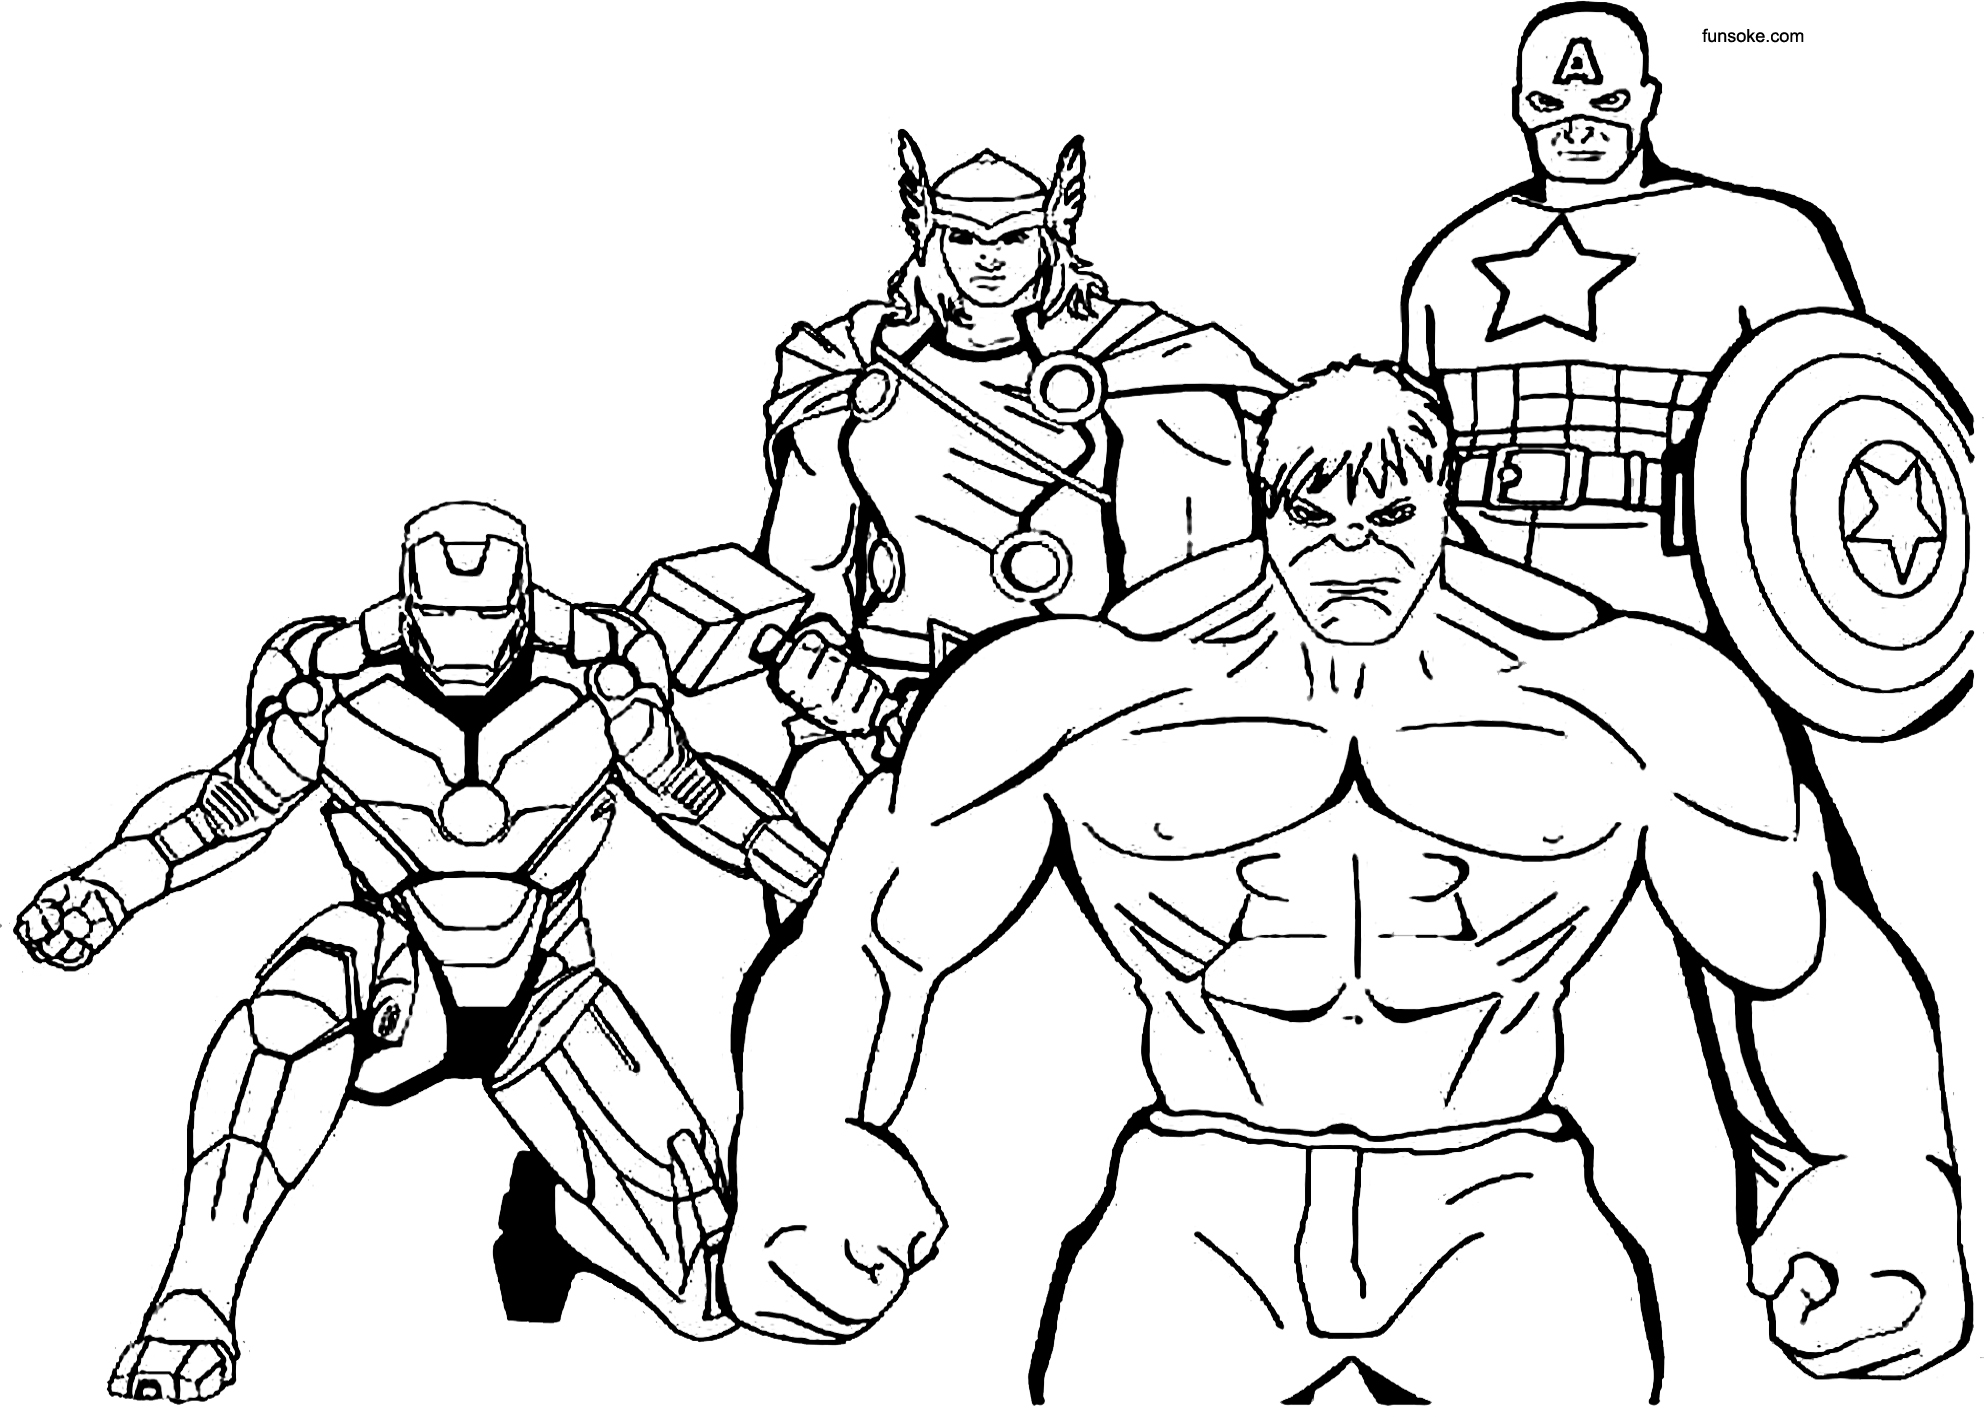 young marvel coloring pages free printable coloring pages for kids avengers funsoke coloring marvel young pages